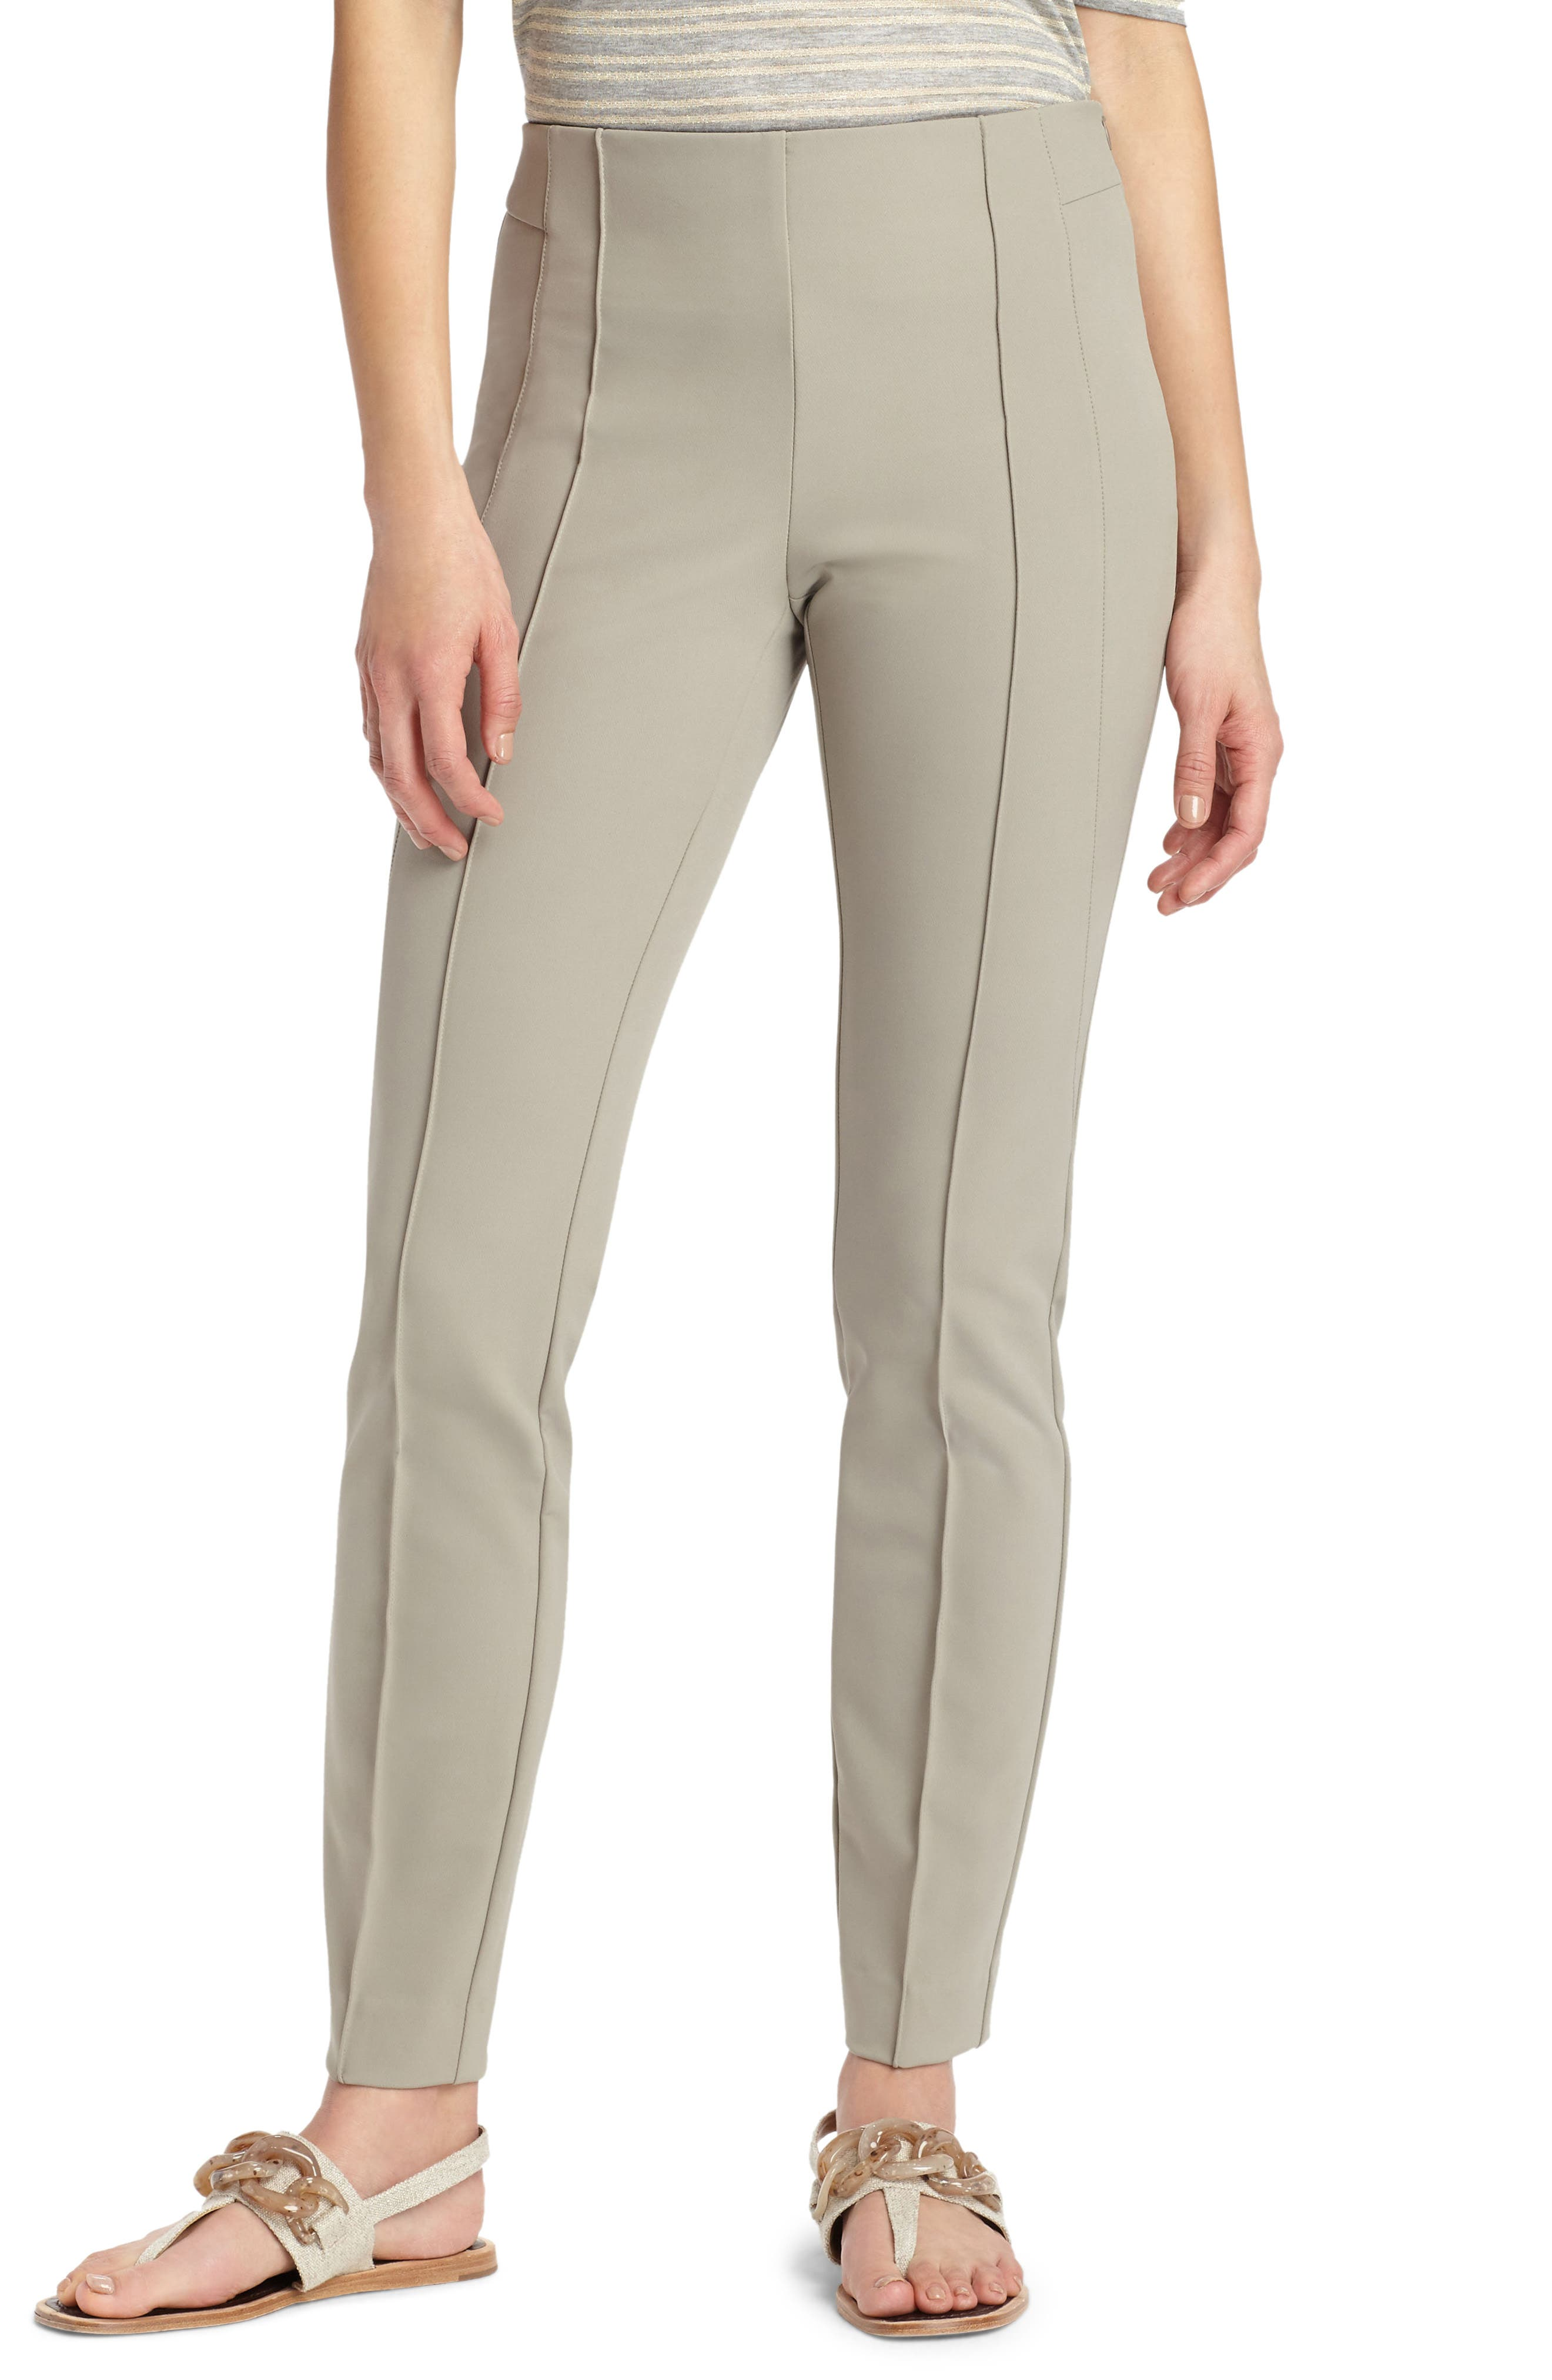 'Gramercy' Acclaimed Stretch Pants,                         Main,                         color, PARTRIDGE